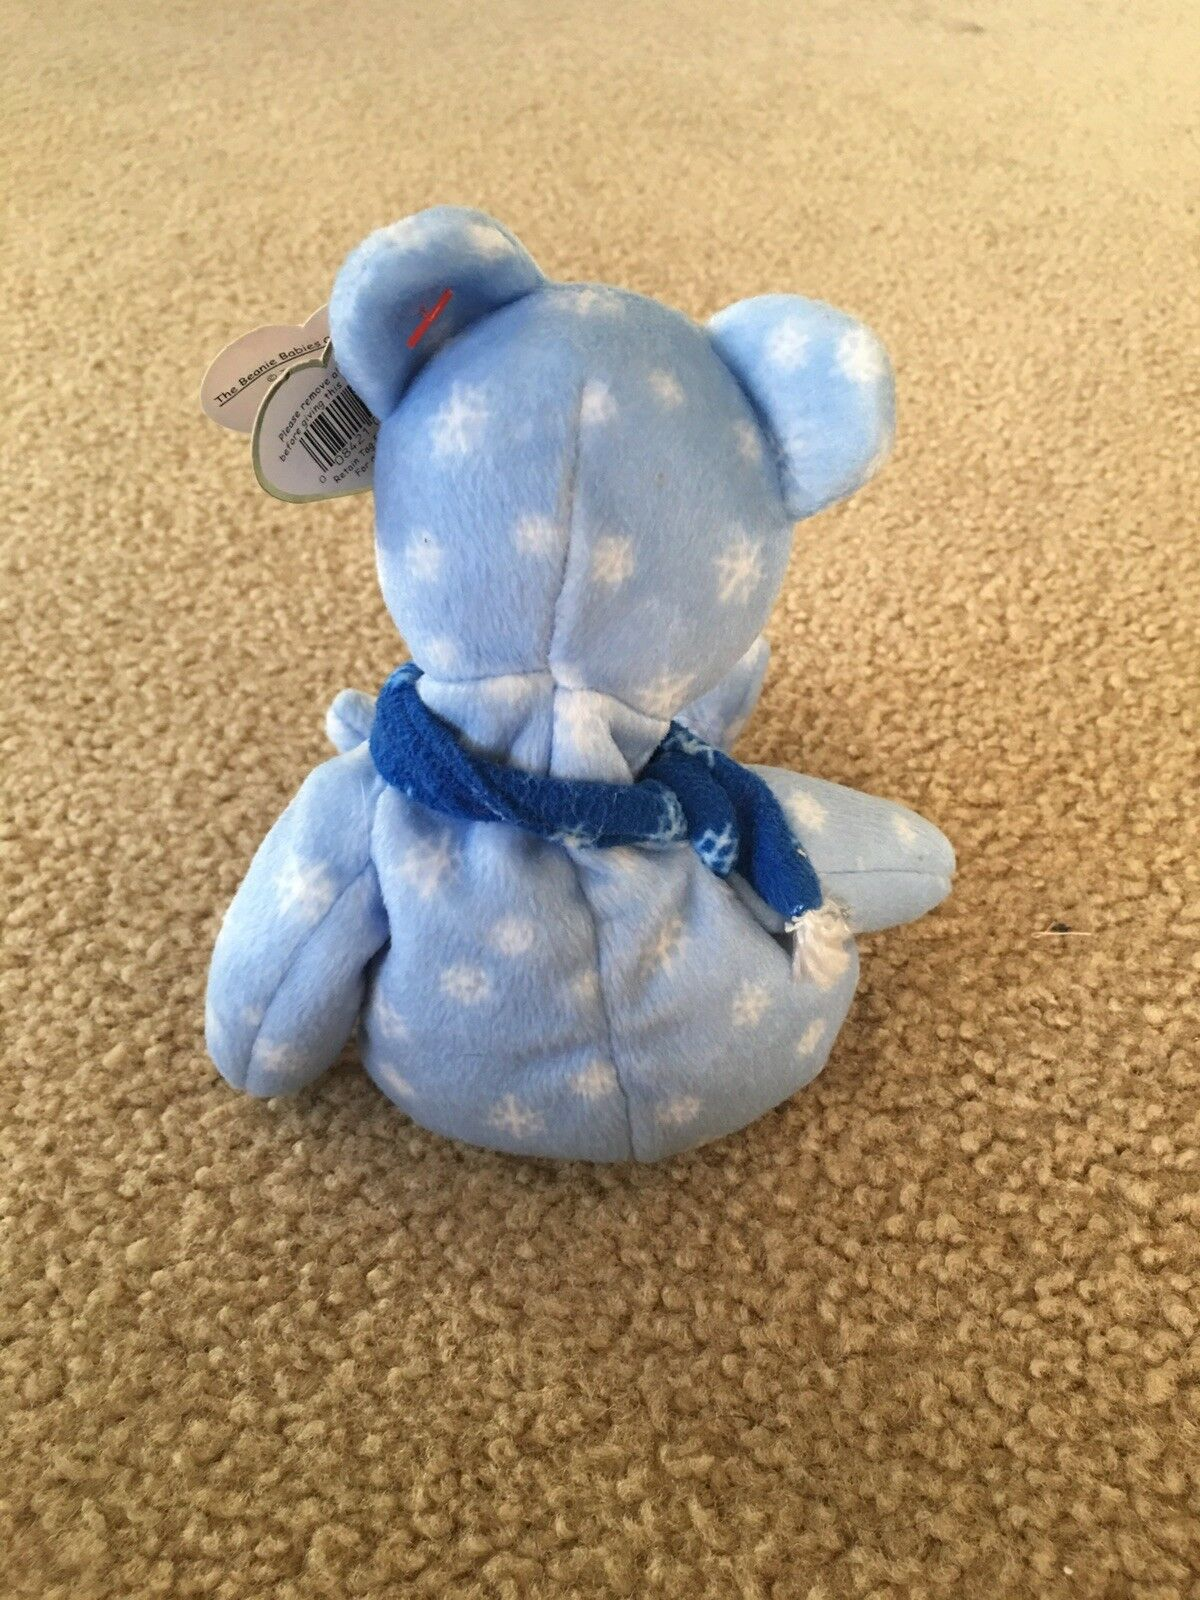 Beanie baby, holiday 1999 holiday holiday holiday teddy, bluee beanie baby, winter beanie baby b674f8